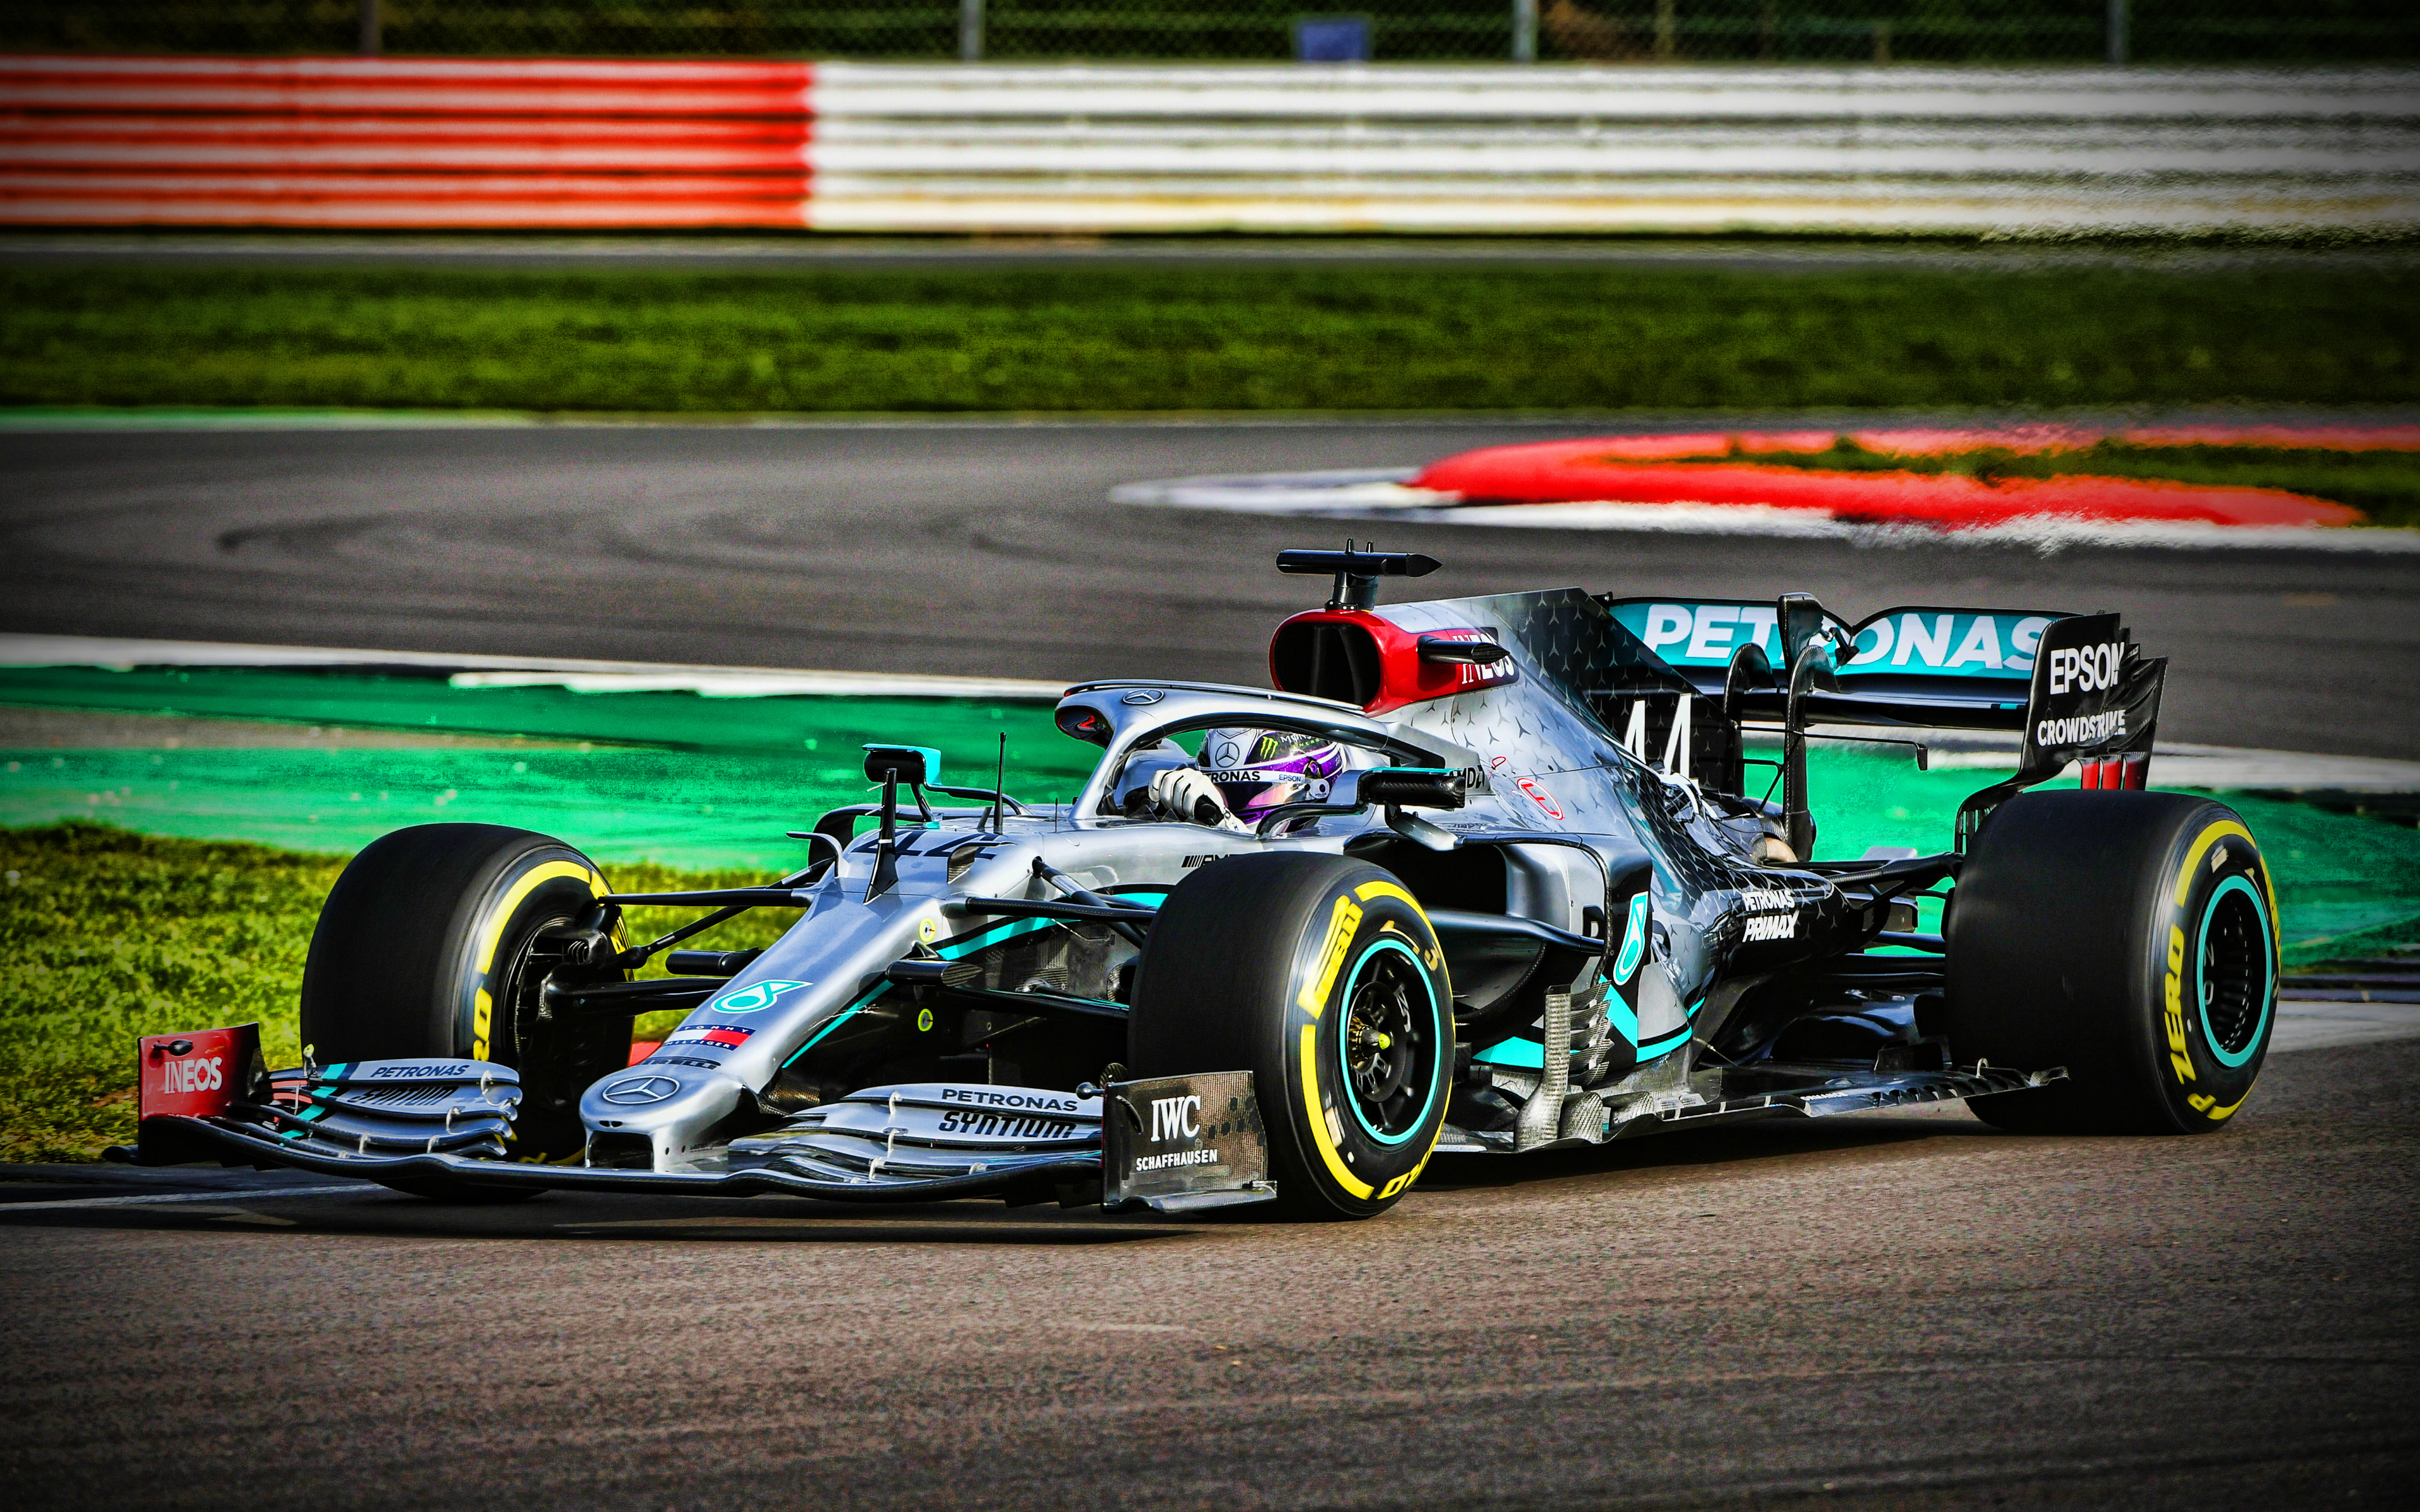 Download wallpapers Mercedes AMG F1 W11 EQ Performance 4k Lewis 3840x2400